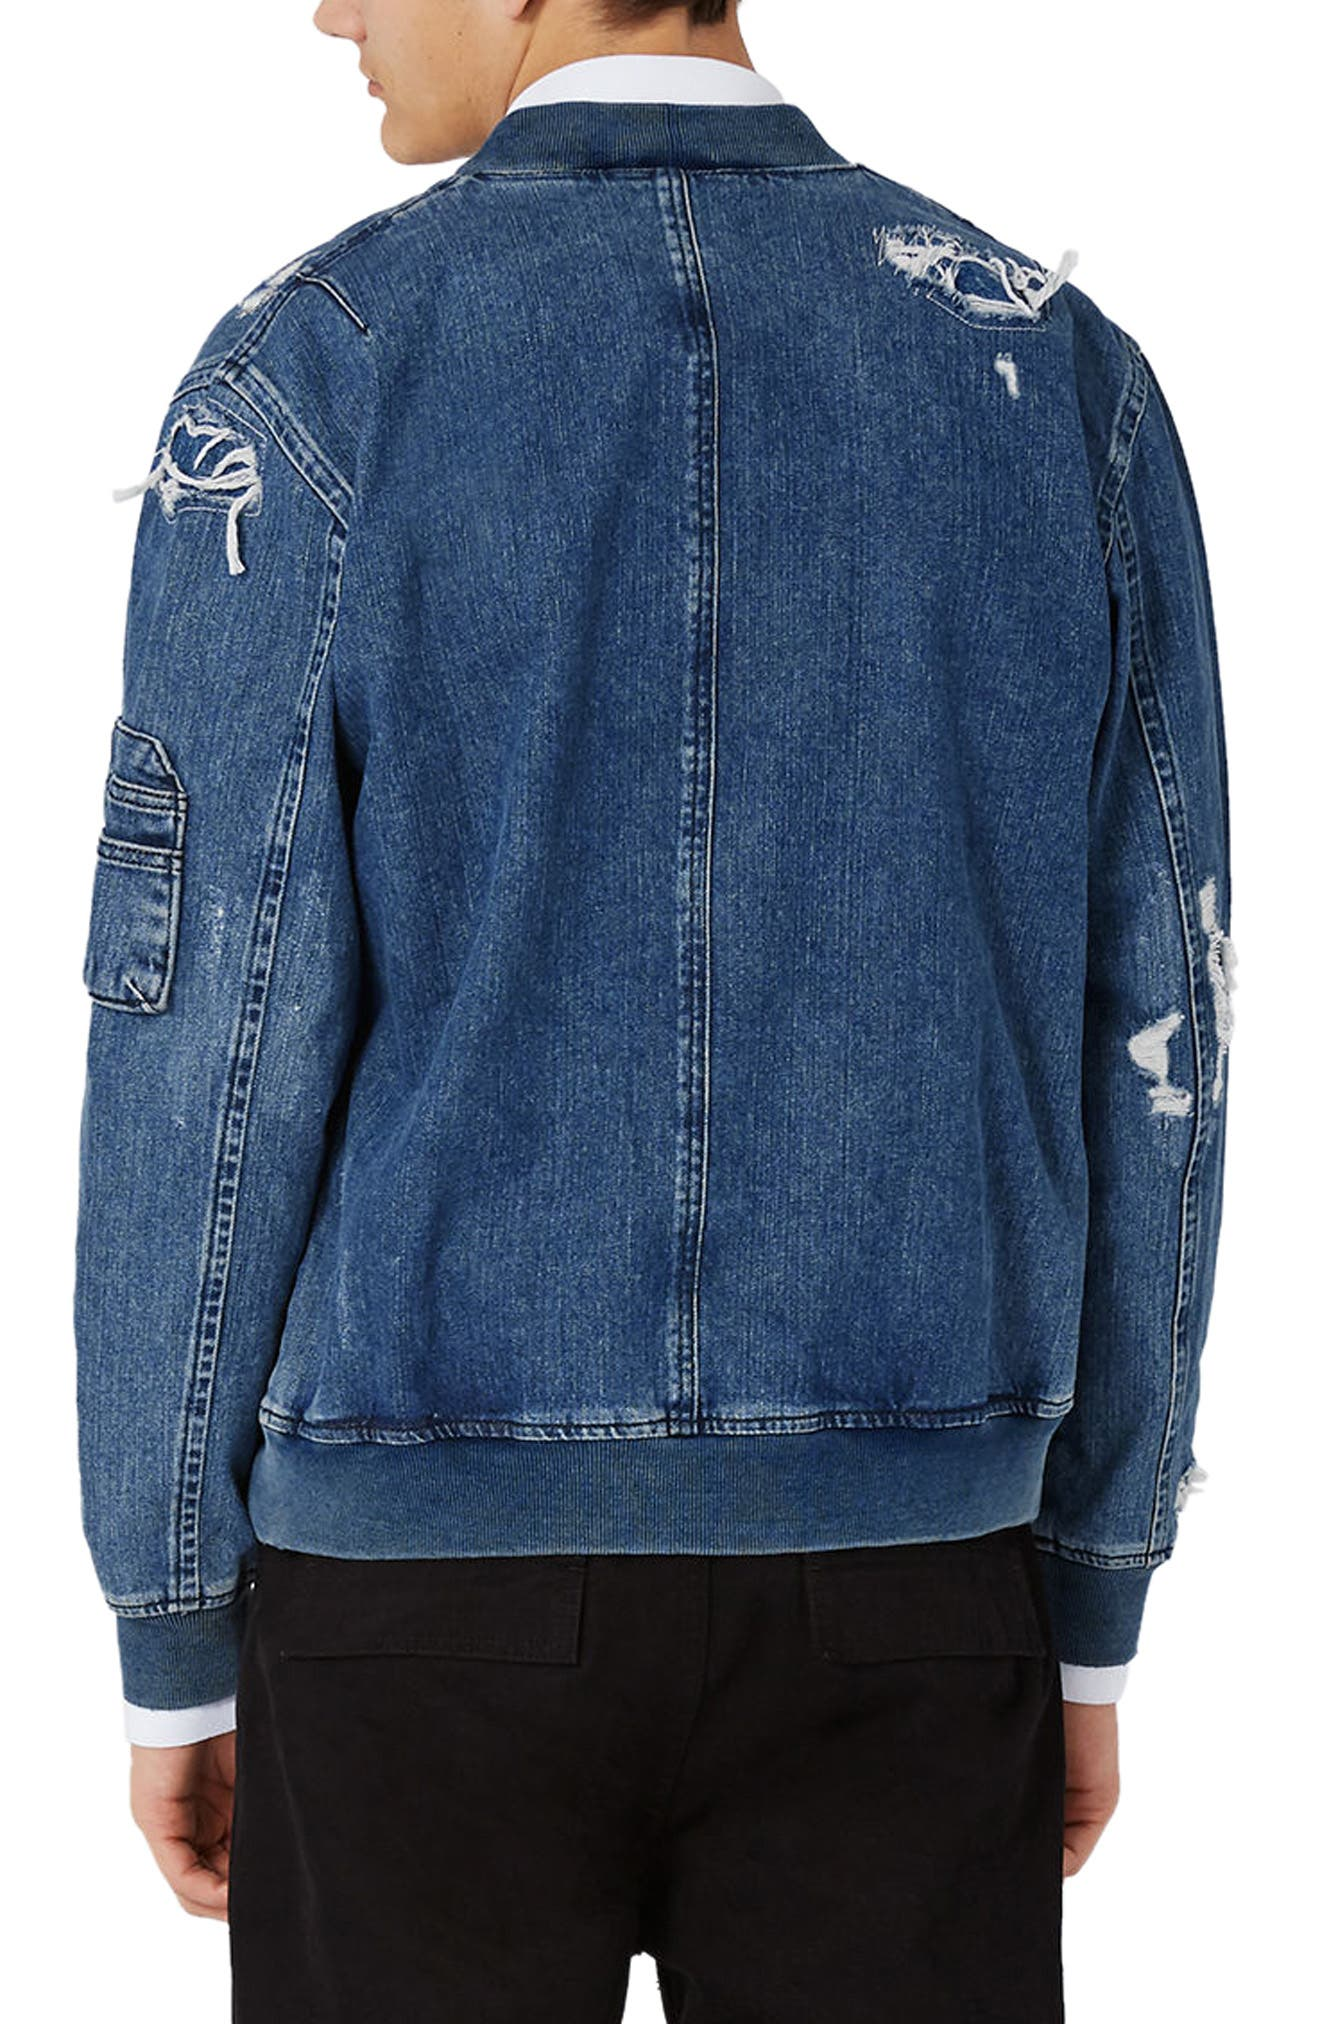 Alternate Image 3  - Topman Distressed Denim Bomber Jacket